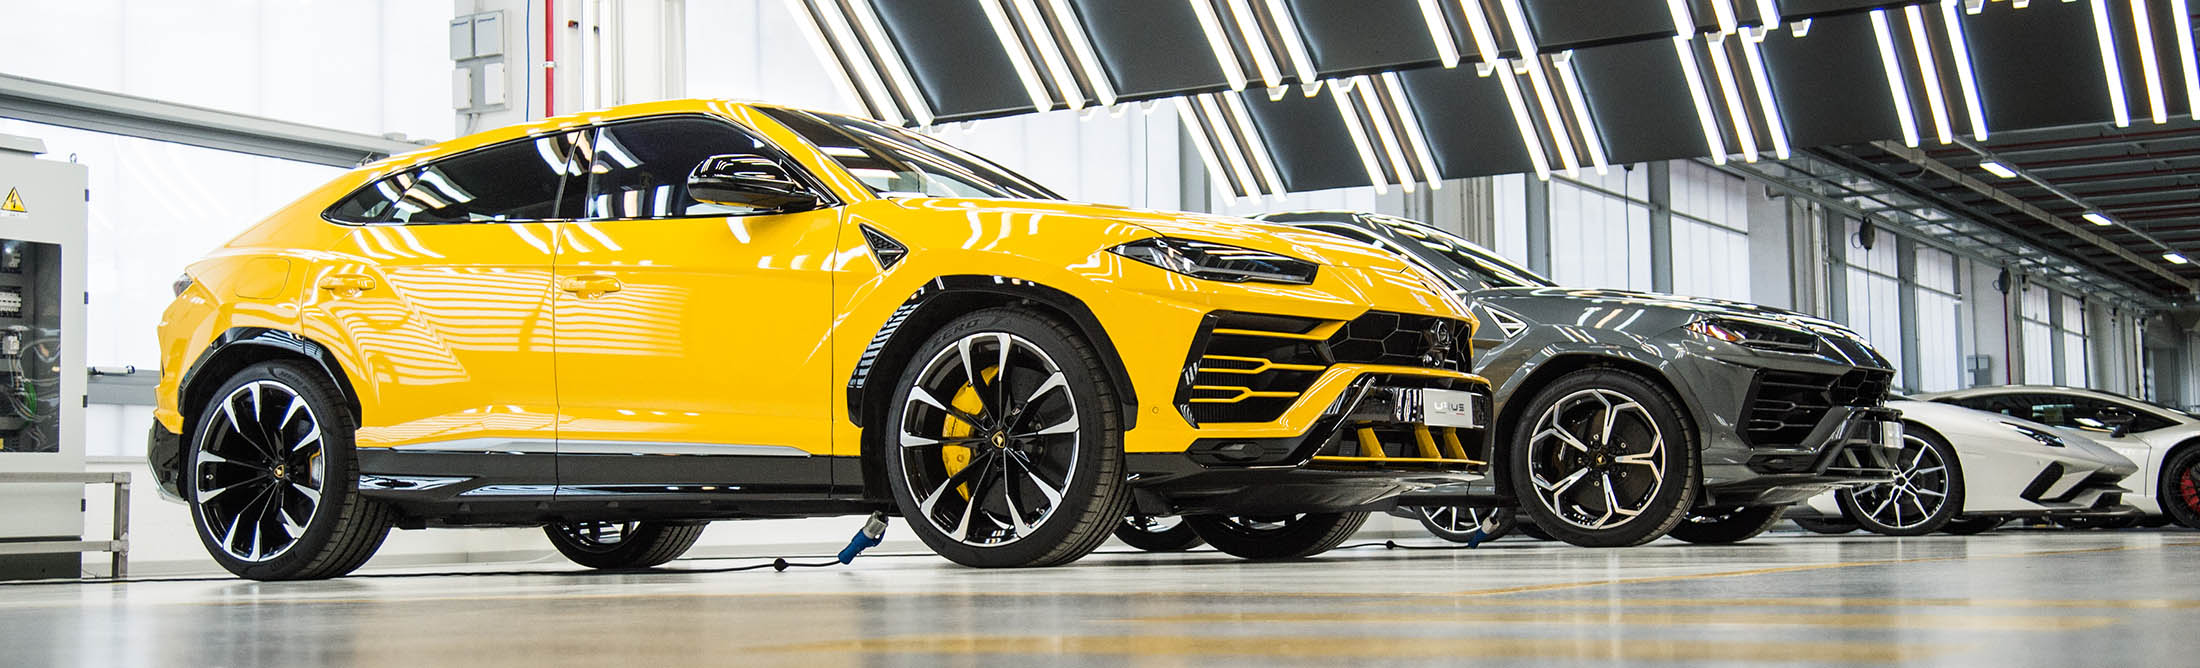 Deep Inside The Lamborghini Urus Factory Bloomberg